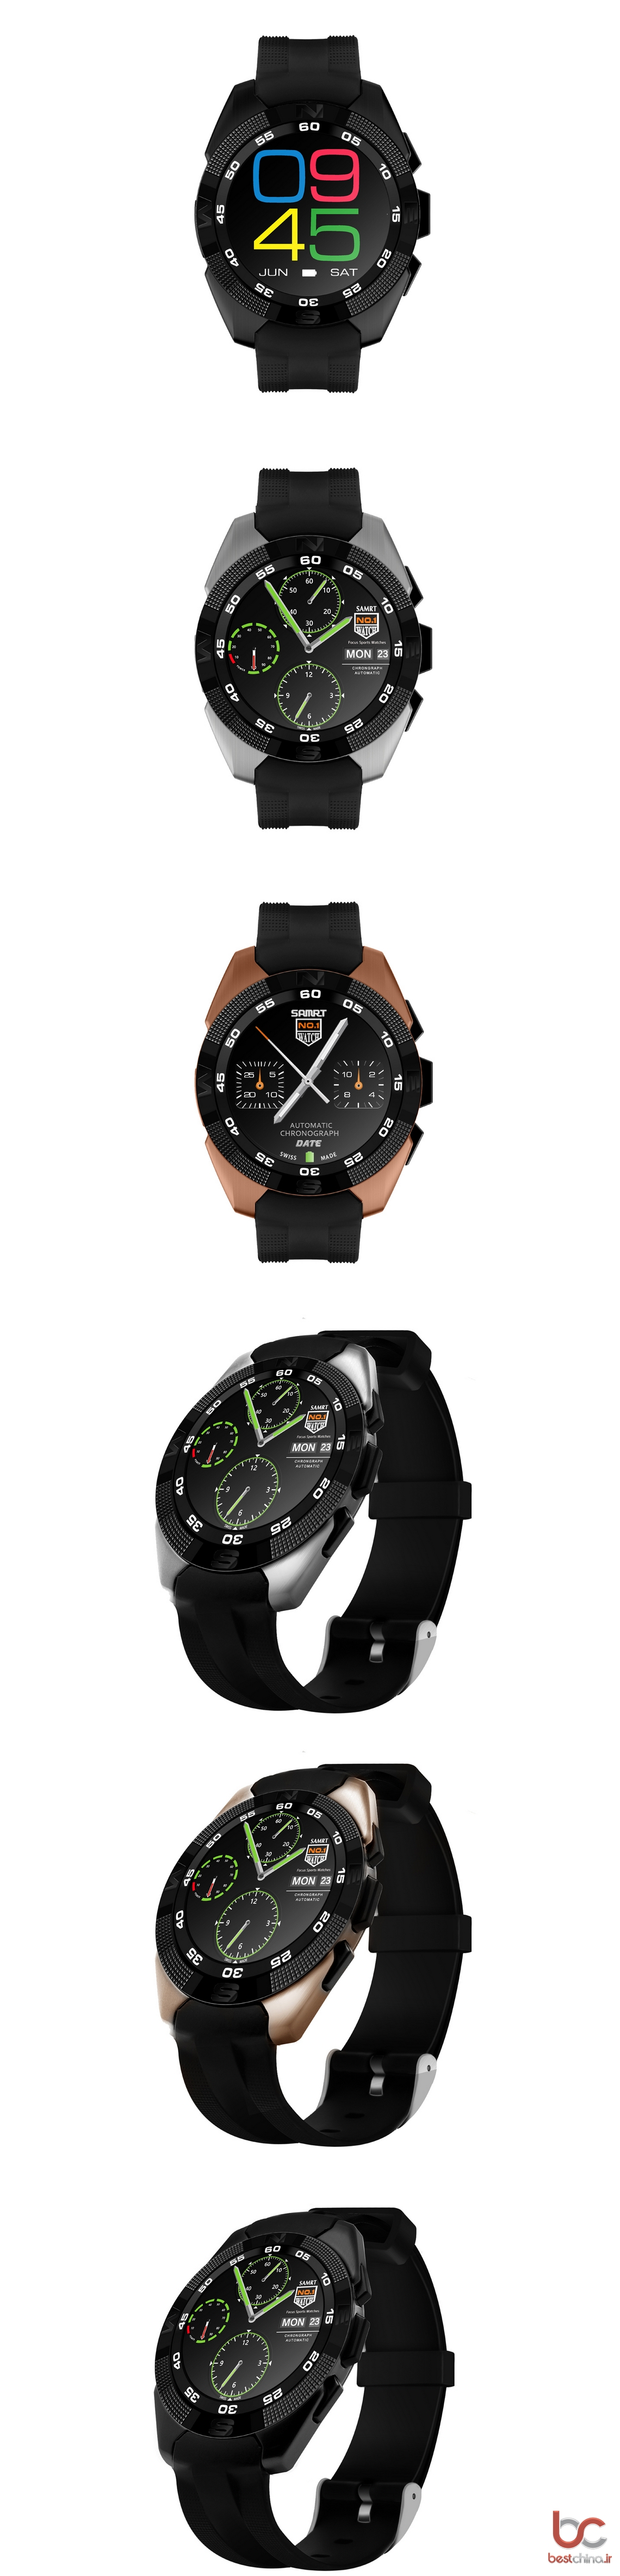 NO.1 G5 Smartwatch (8)